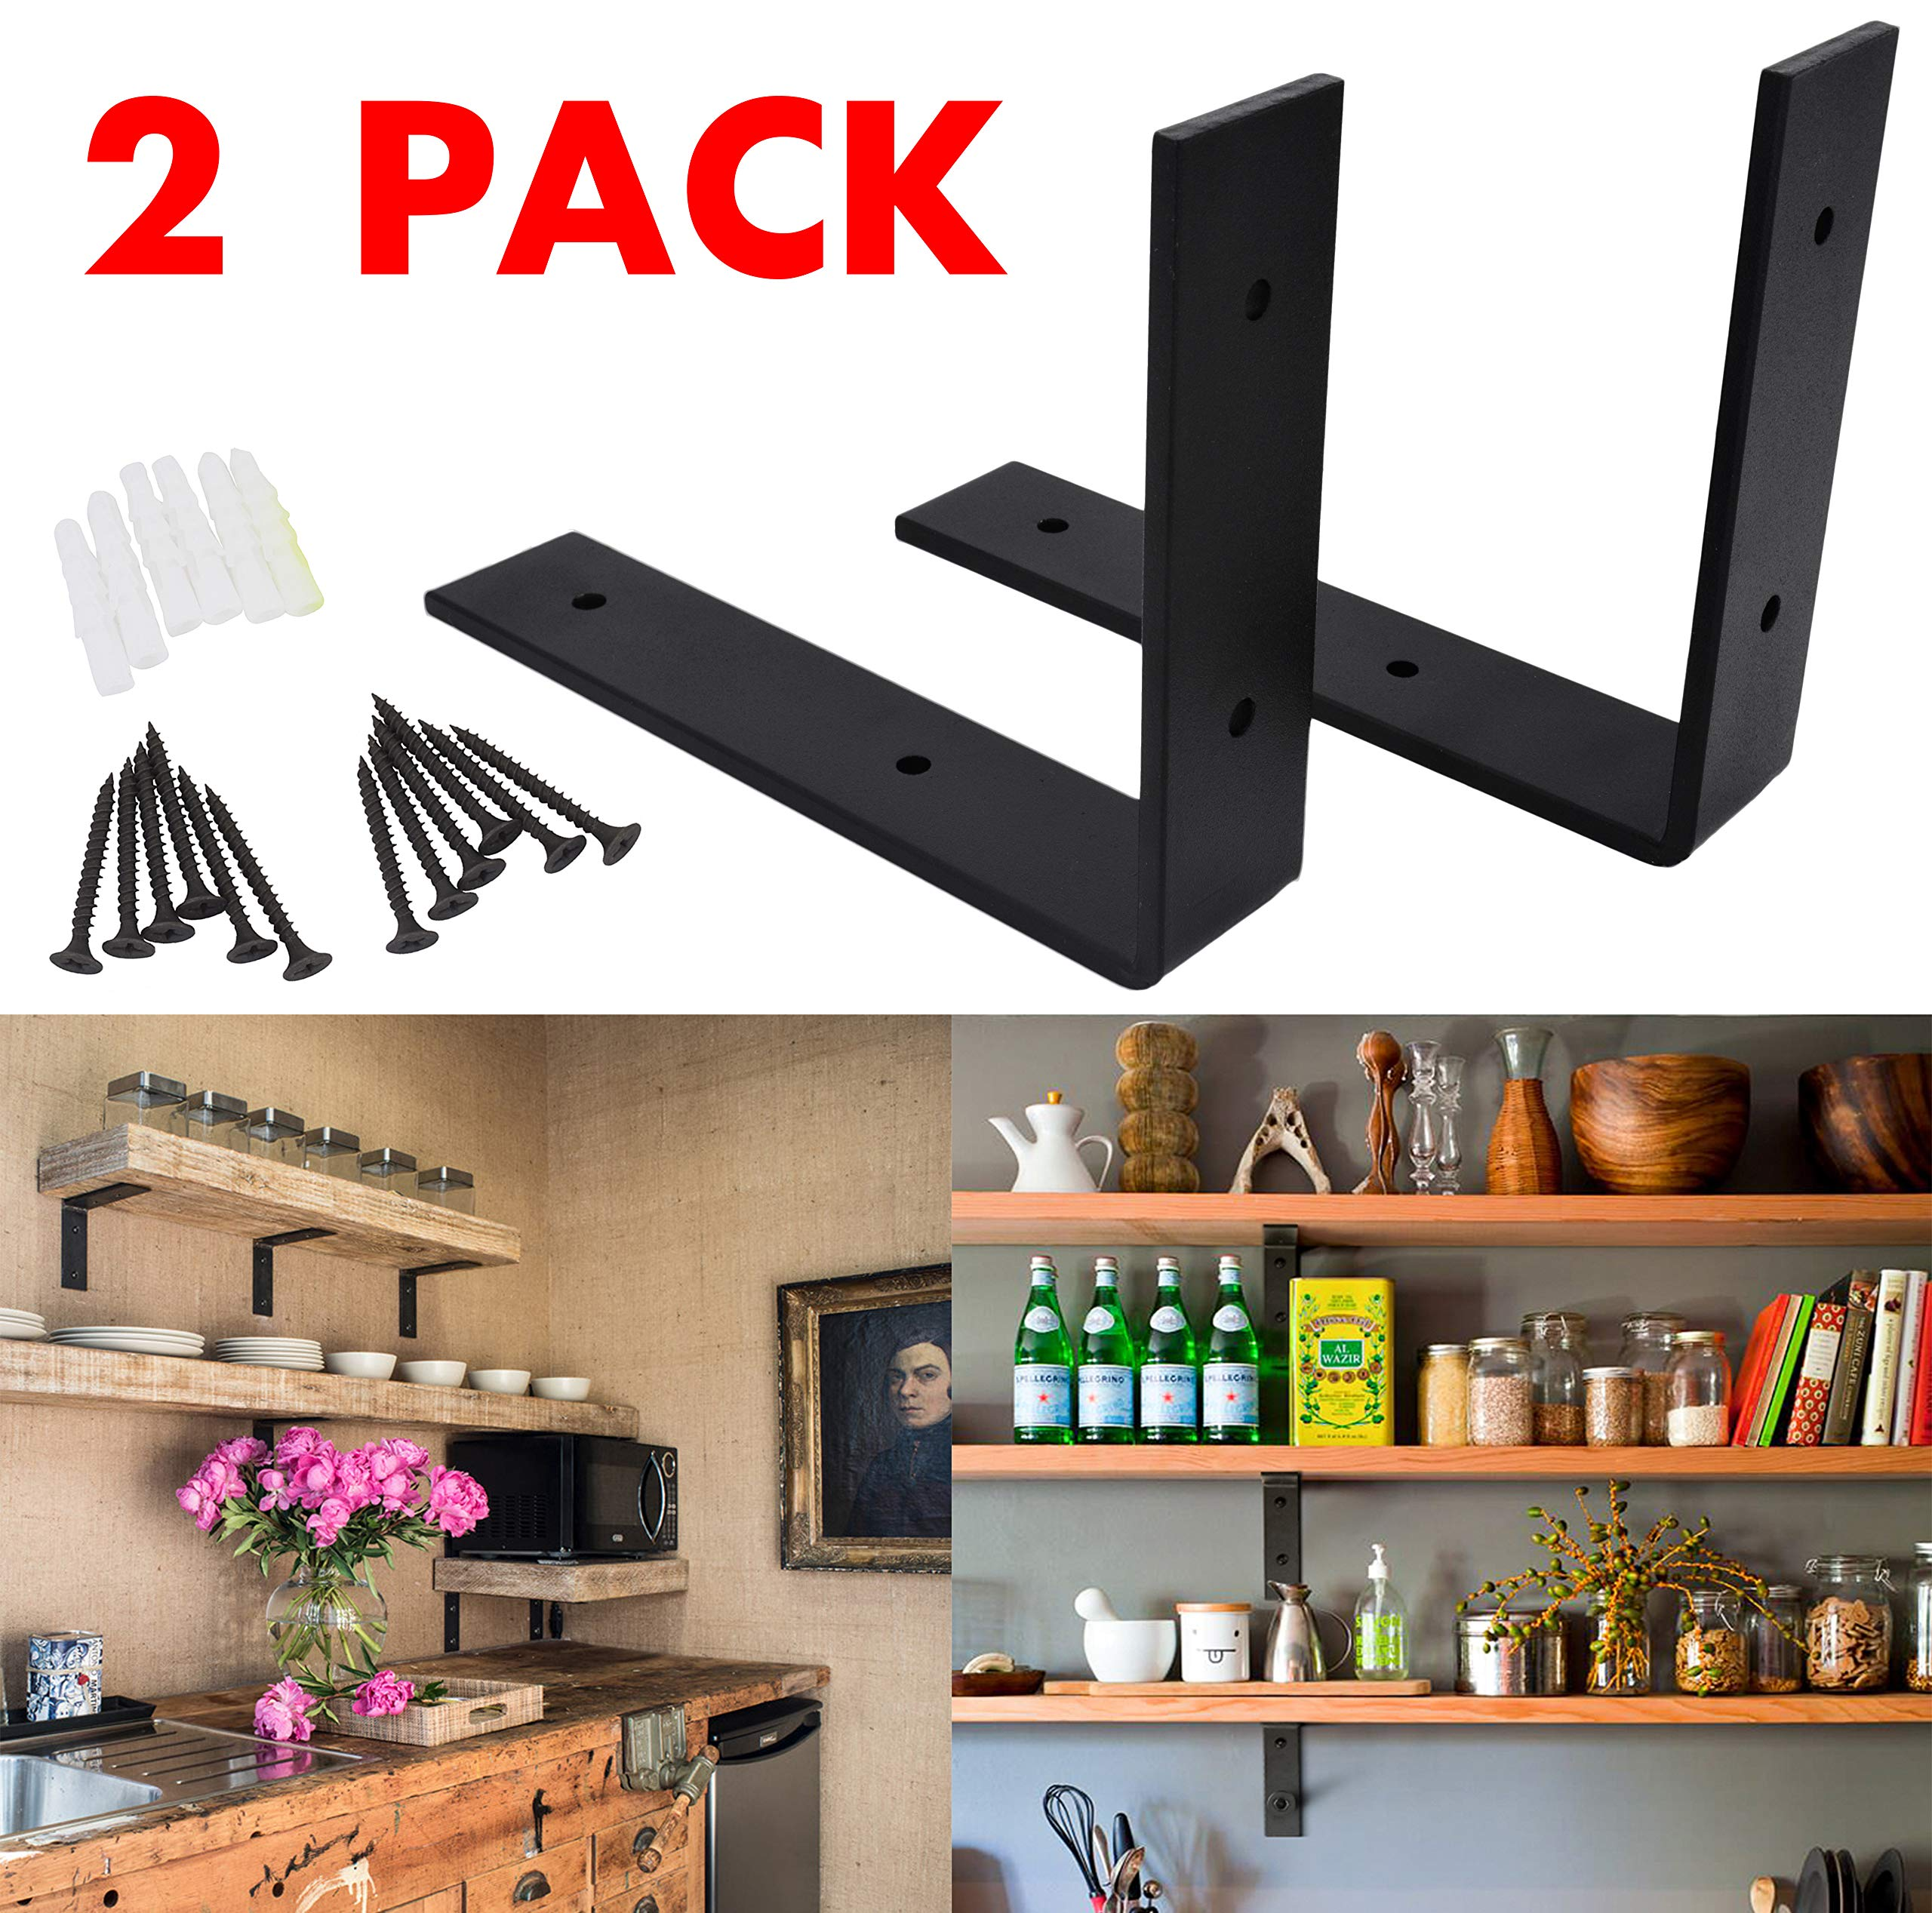 OVOV 2 Pack Iron Steel Shelf Bracket Heavy Duty Thicken L Floating Countertop Support Bracket for Wall Hanging Decorative with Free Hook Hanger (Black) 10''